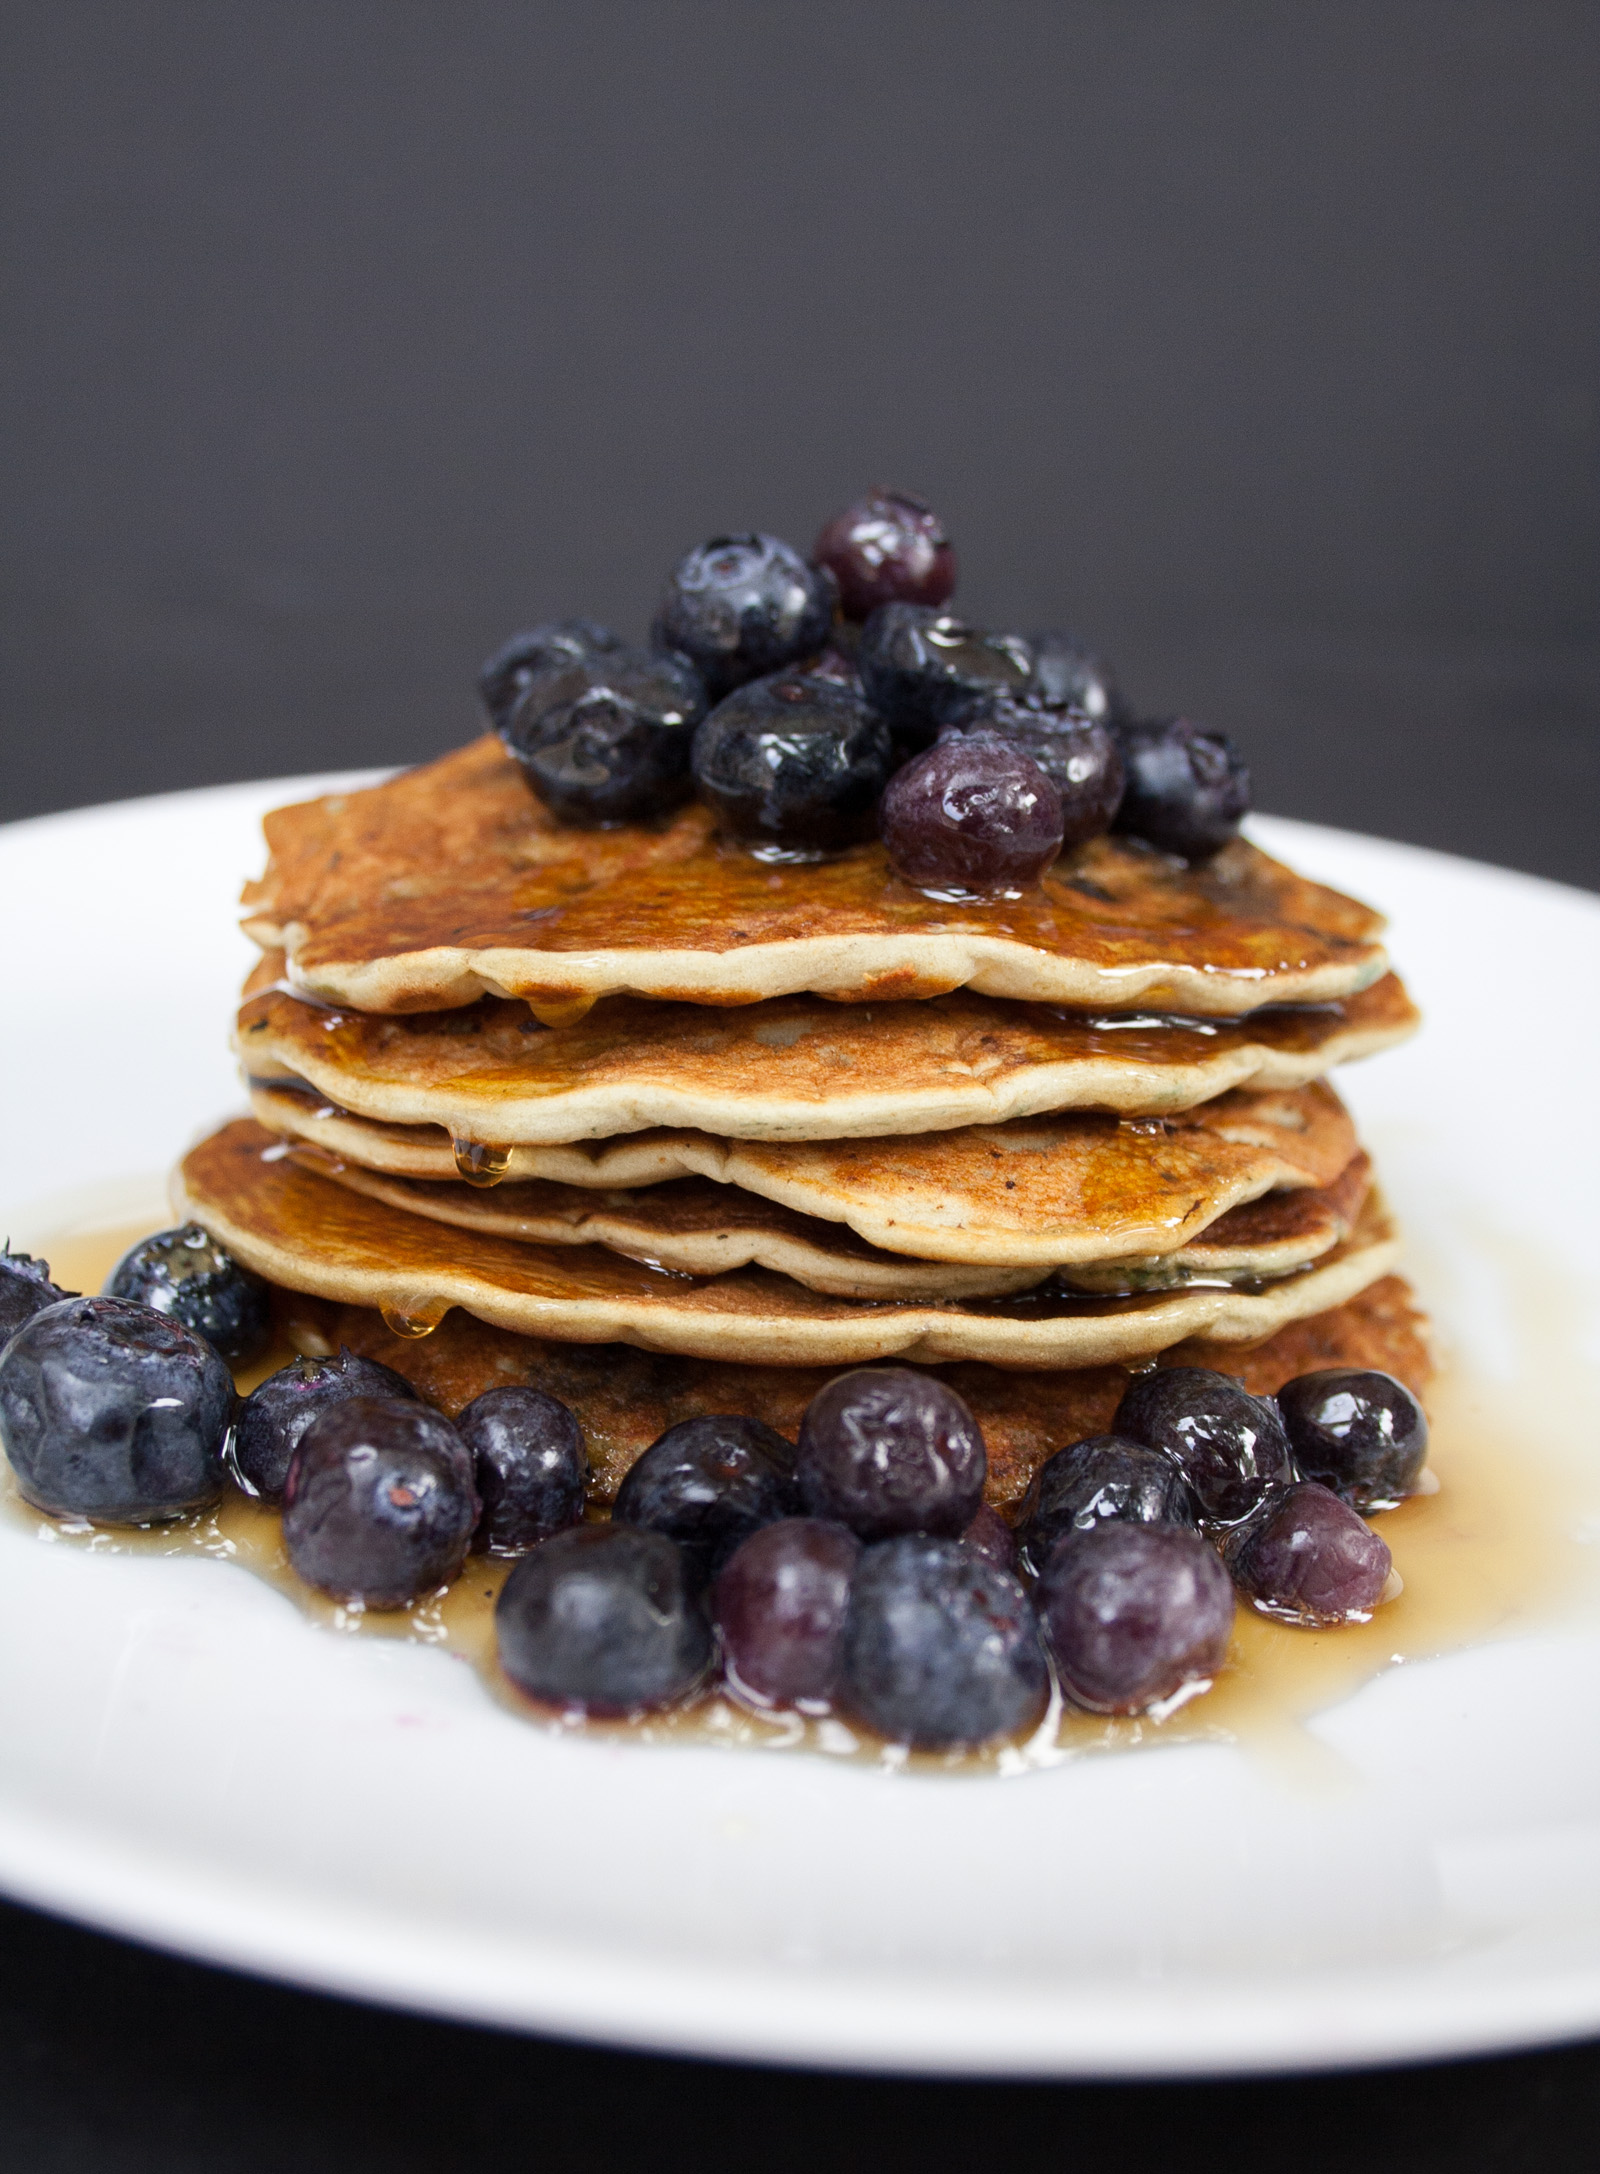 Vegan Gluten Free Blueberry Pancakes stacked with blueberries on a plate.